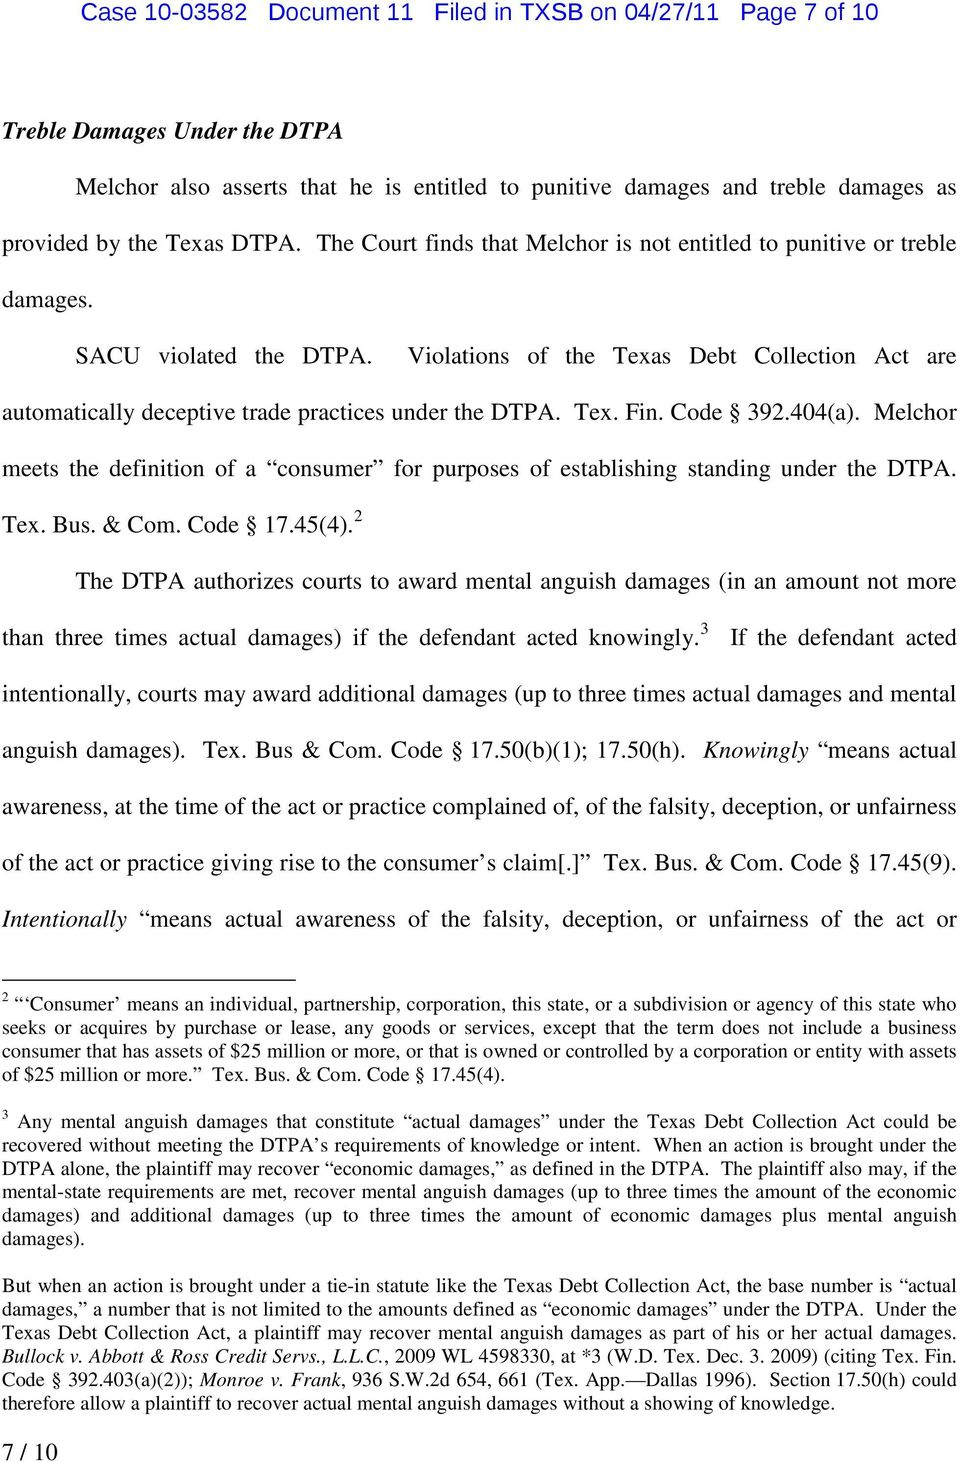 Violations of the Texas Debt Collection Act are automatically deceptive trade practices under the DTPA. Tex. Fin. Code 392.404(a).